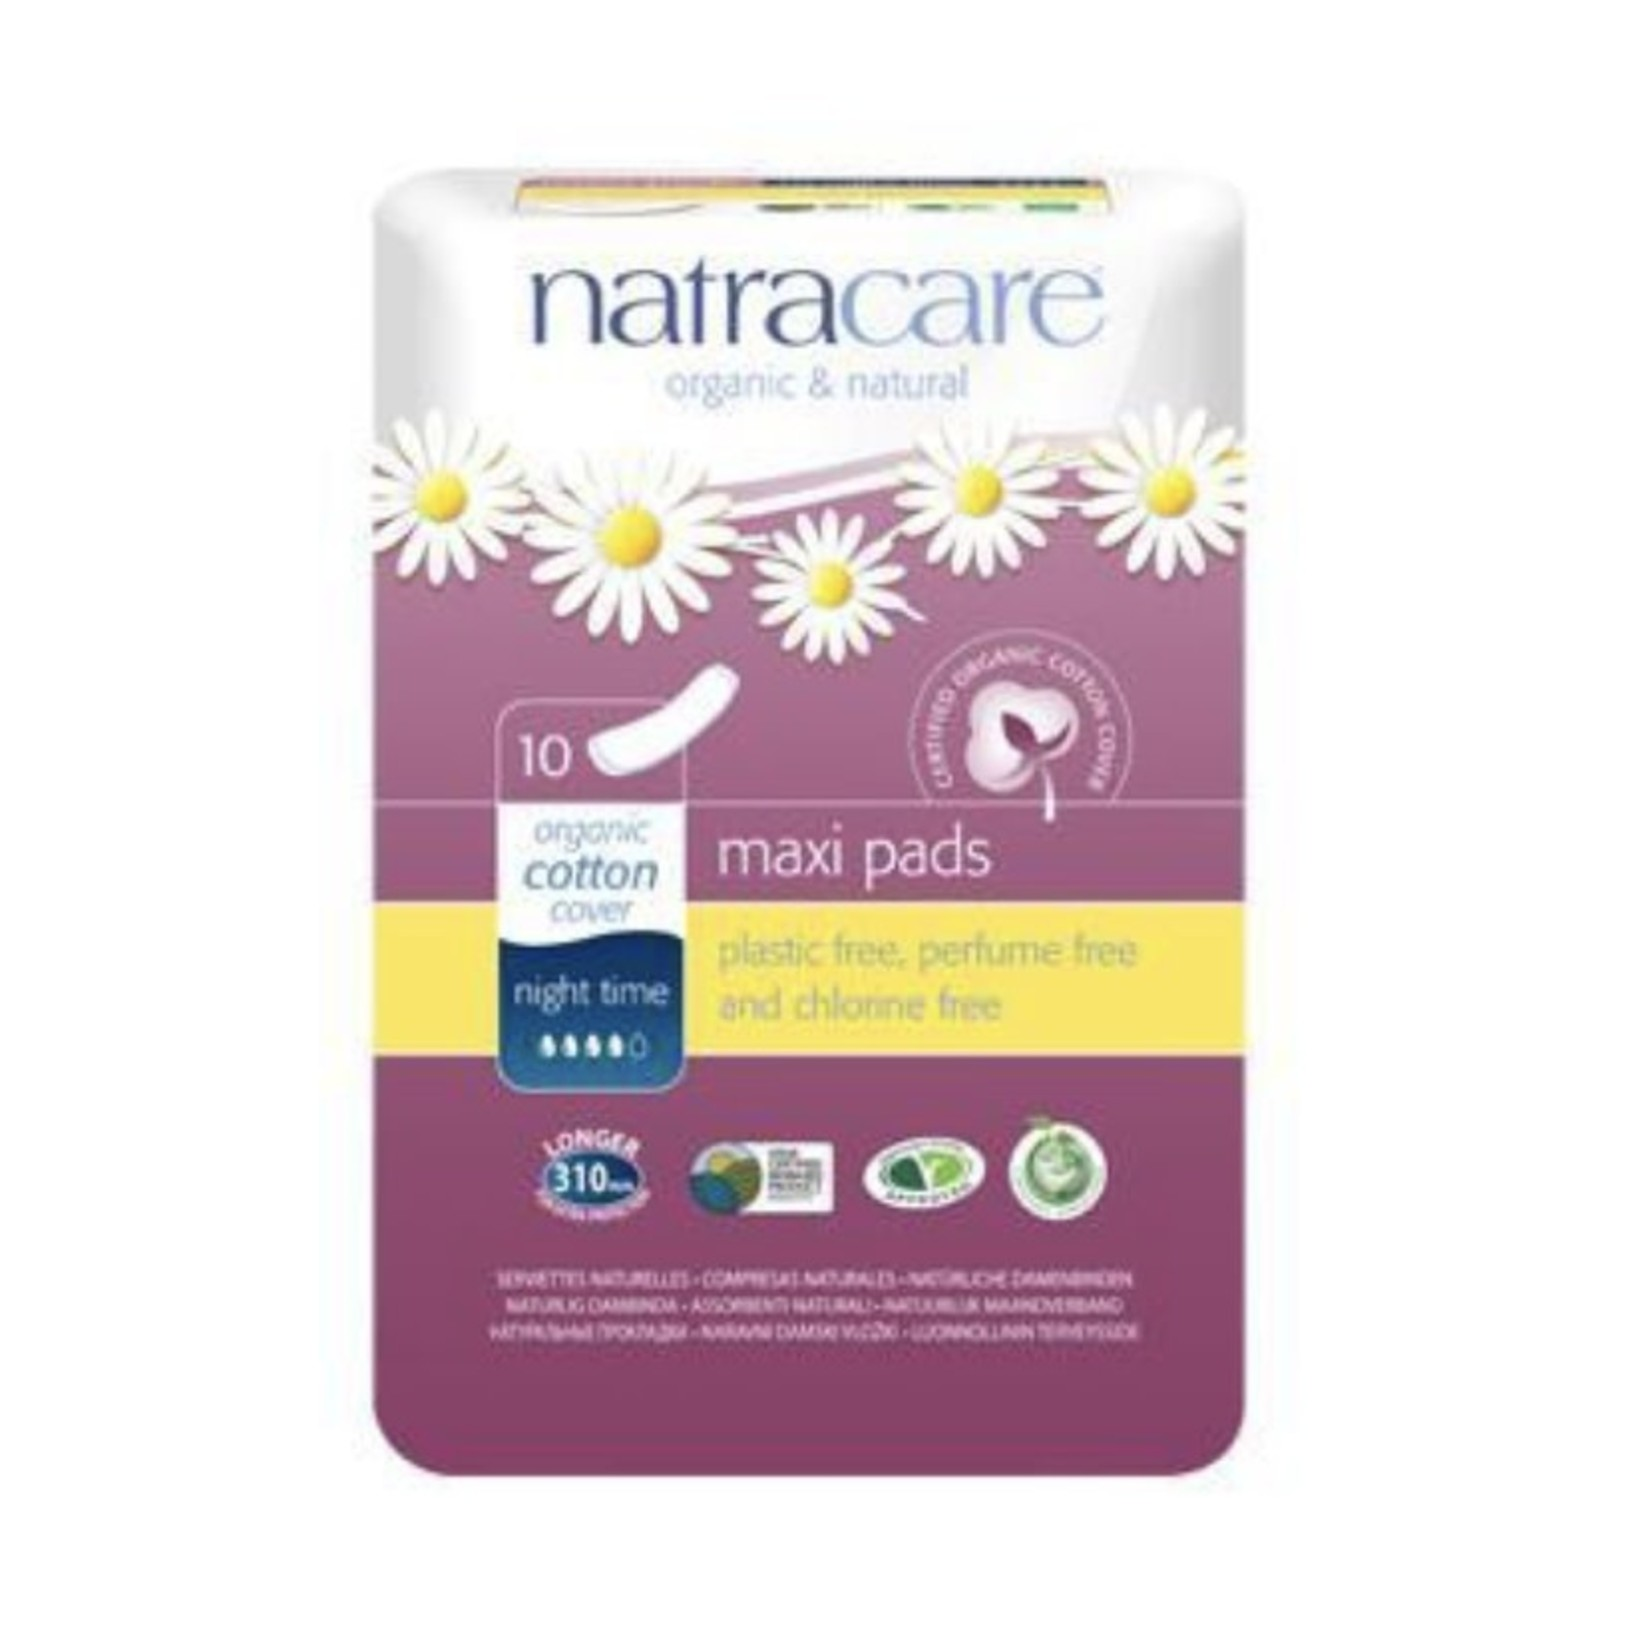 Natracare Natracare Night Time Maxi Pads 10ct